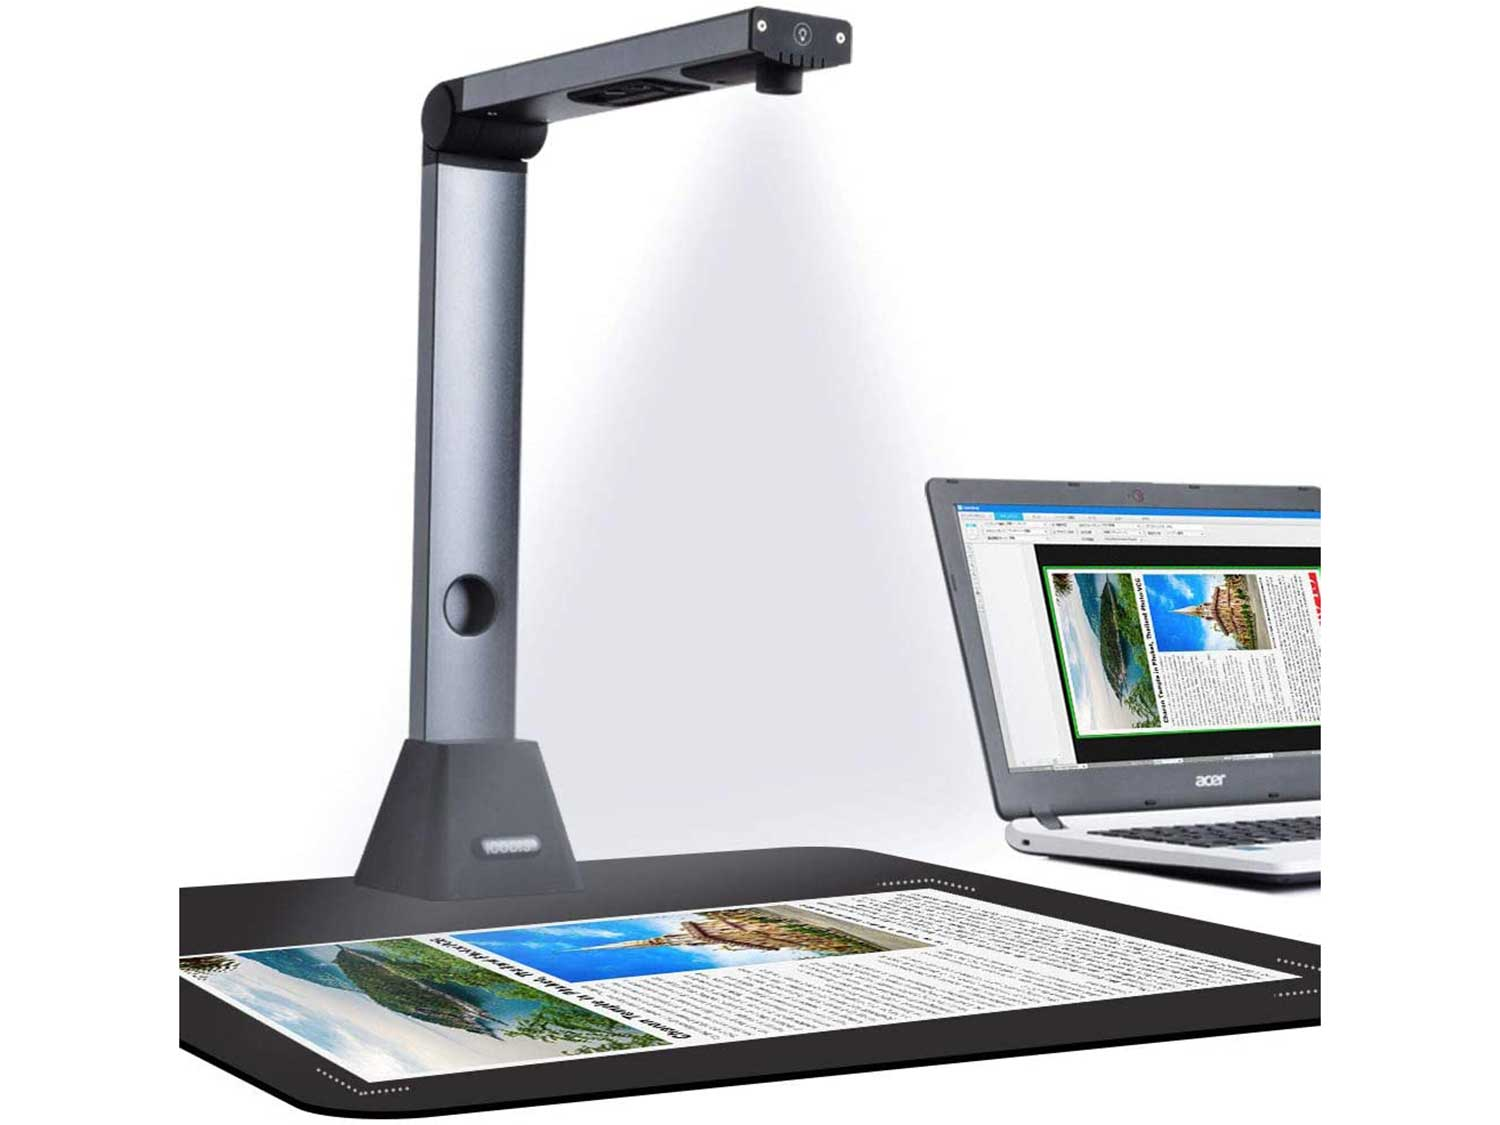 iCODIS Document Camera X3, High Definition Portable Scanner, Capture Size A3, Multi-Language OCR, English Article Recognition, USB, SDK & Twain, Powerful Software